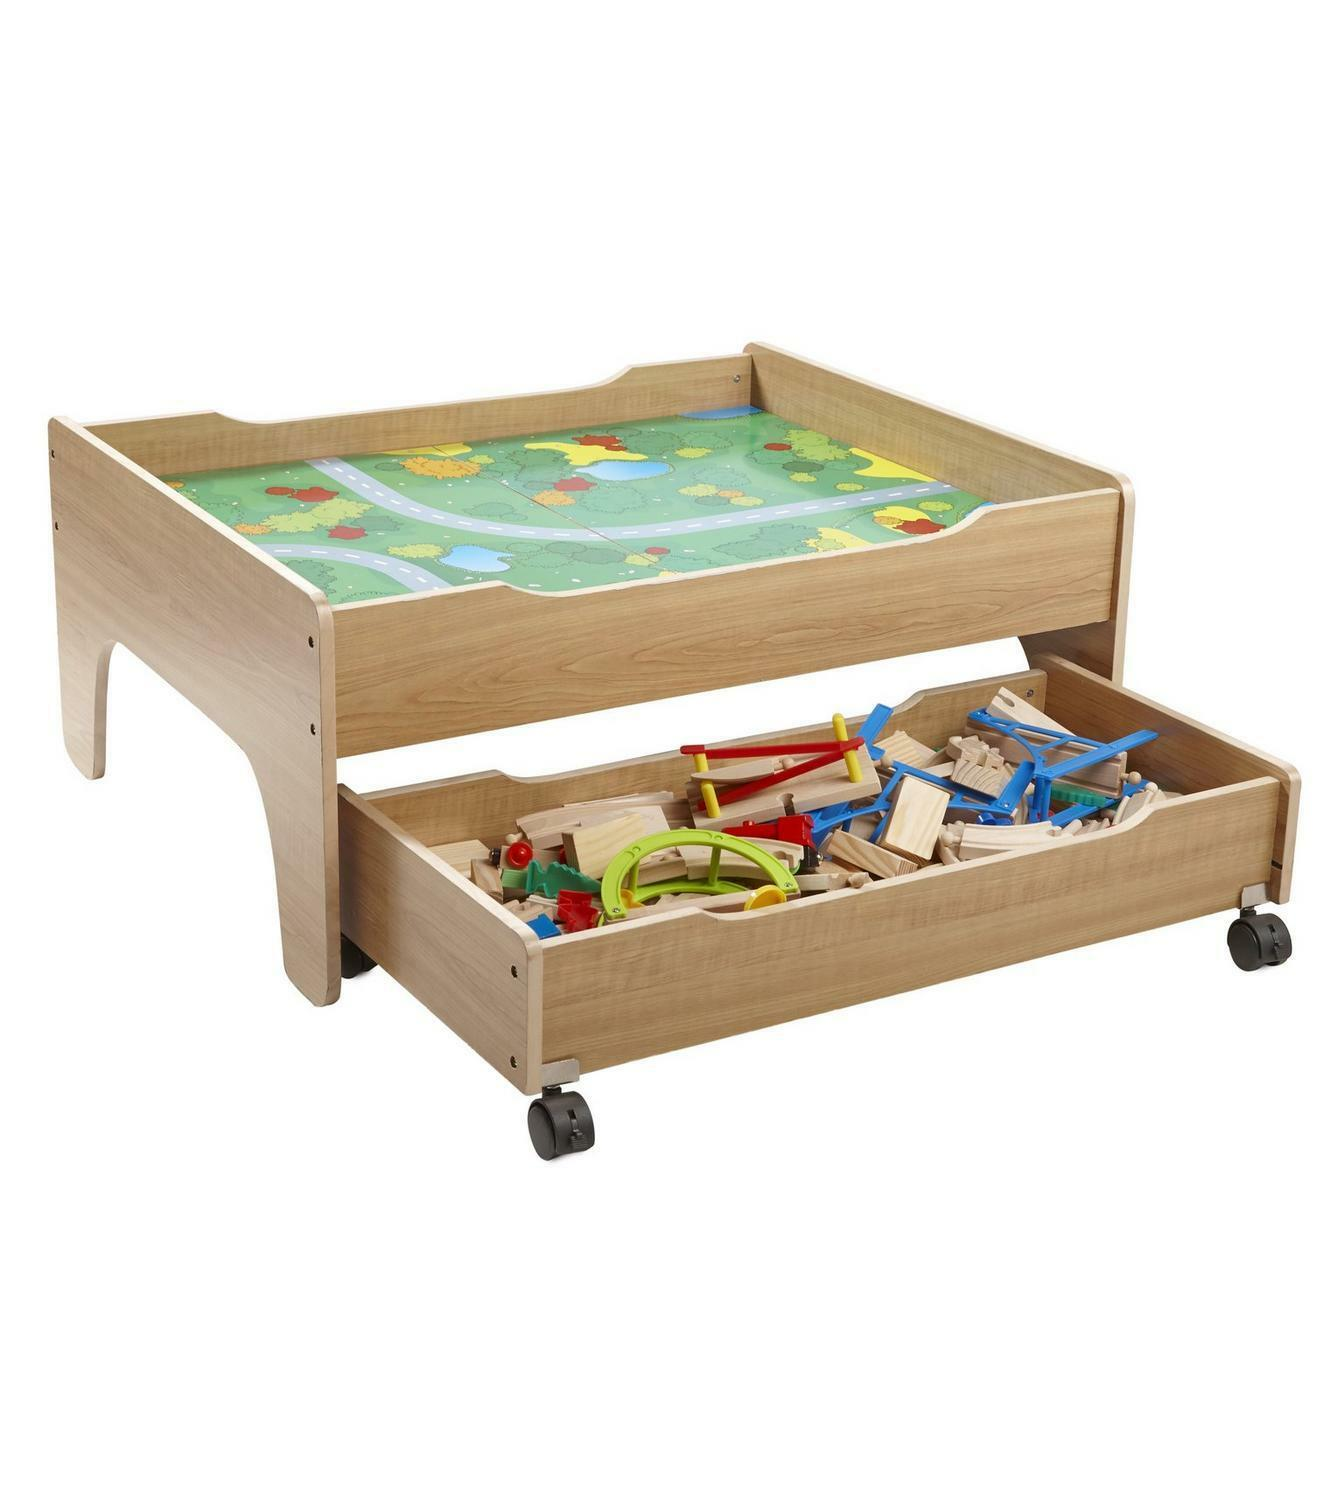 100 100 100 Piece Wooden Train Set Table with Reversible Car Play Table & Drawer 71bedd